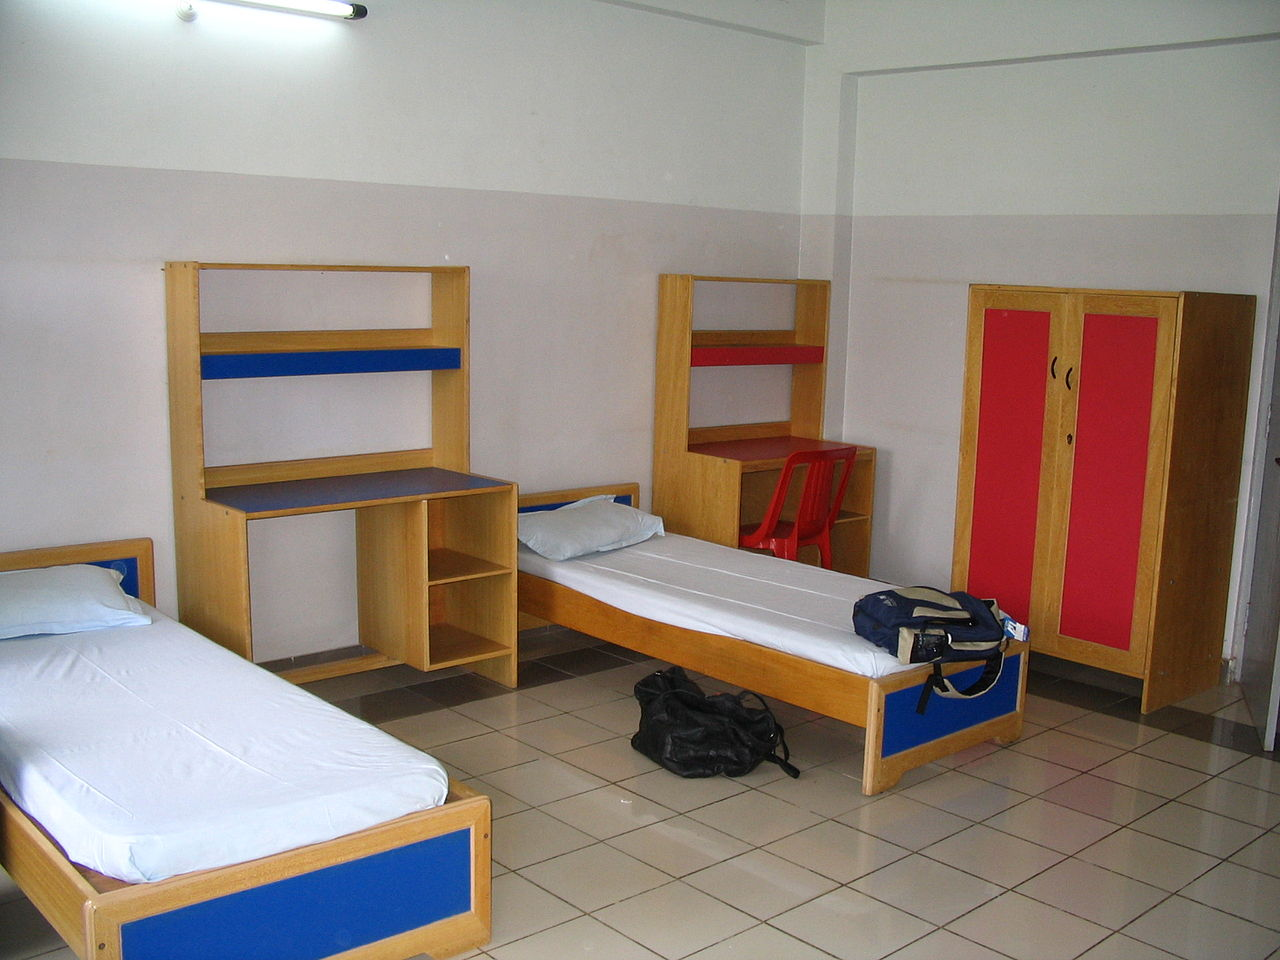 File Tisb Room In The Boys Hostel Jpg Wikimedia Commons